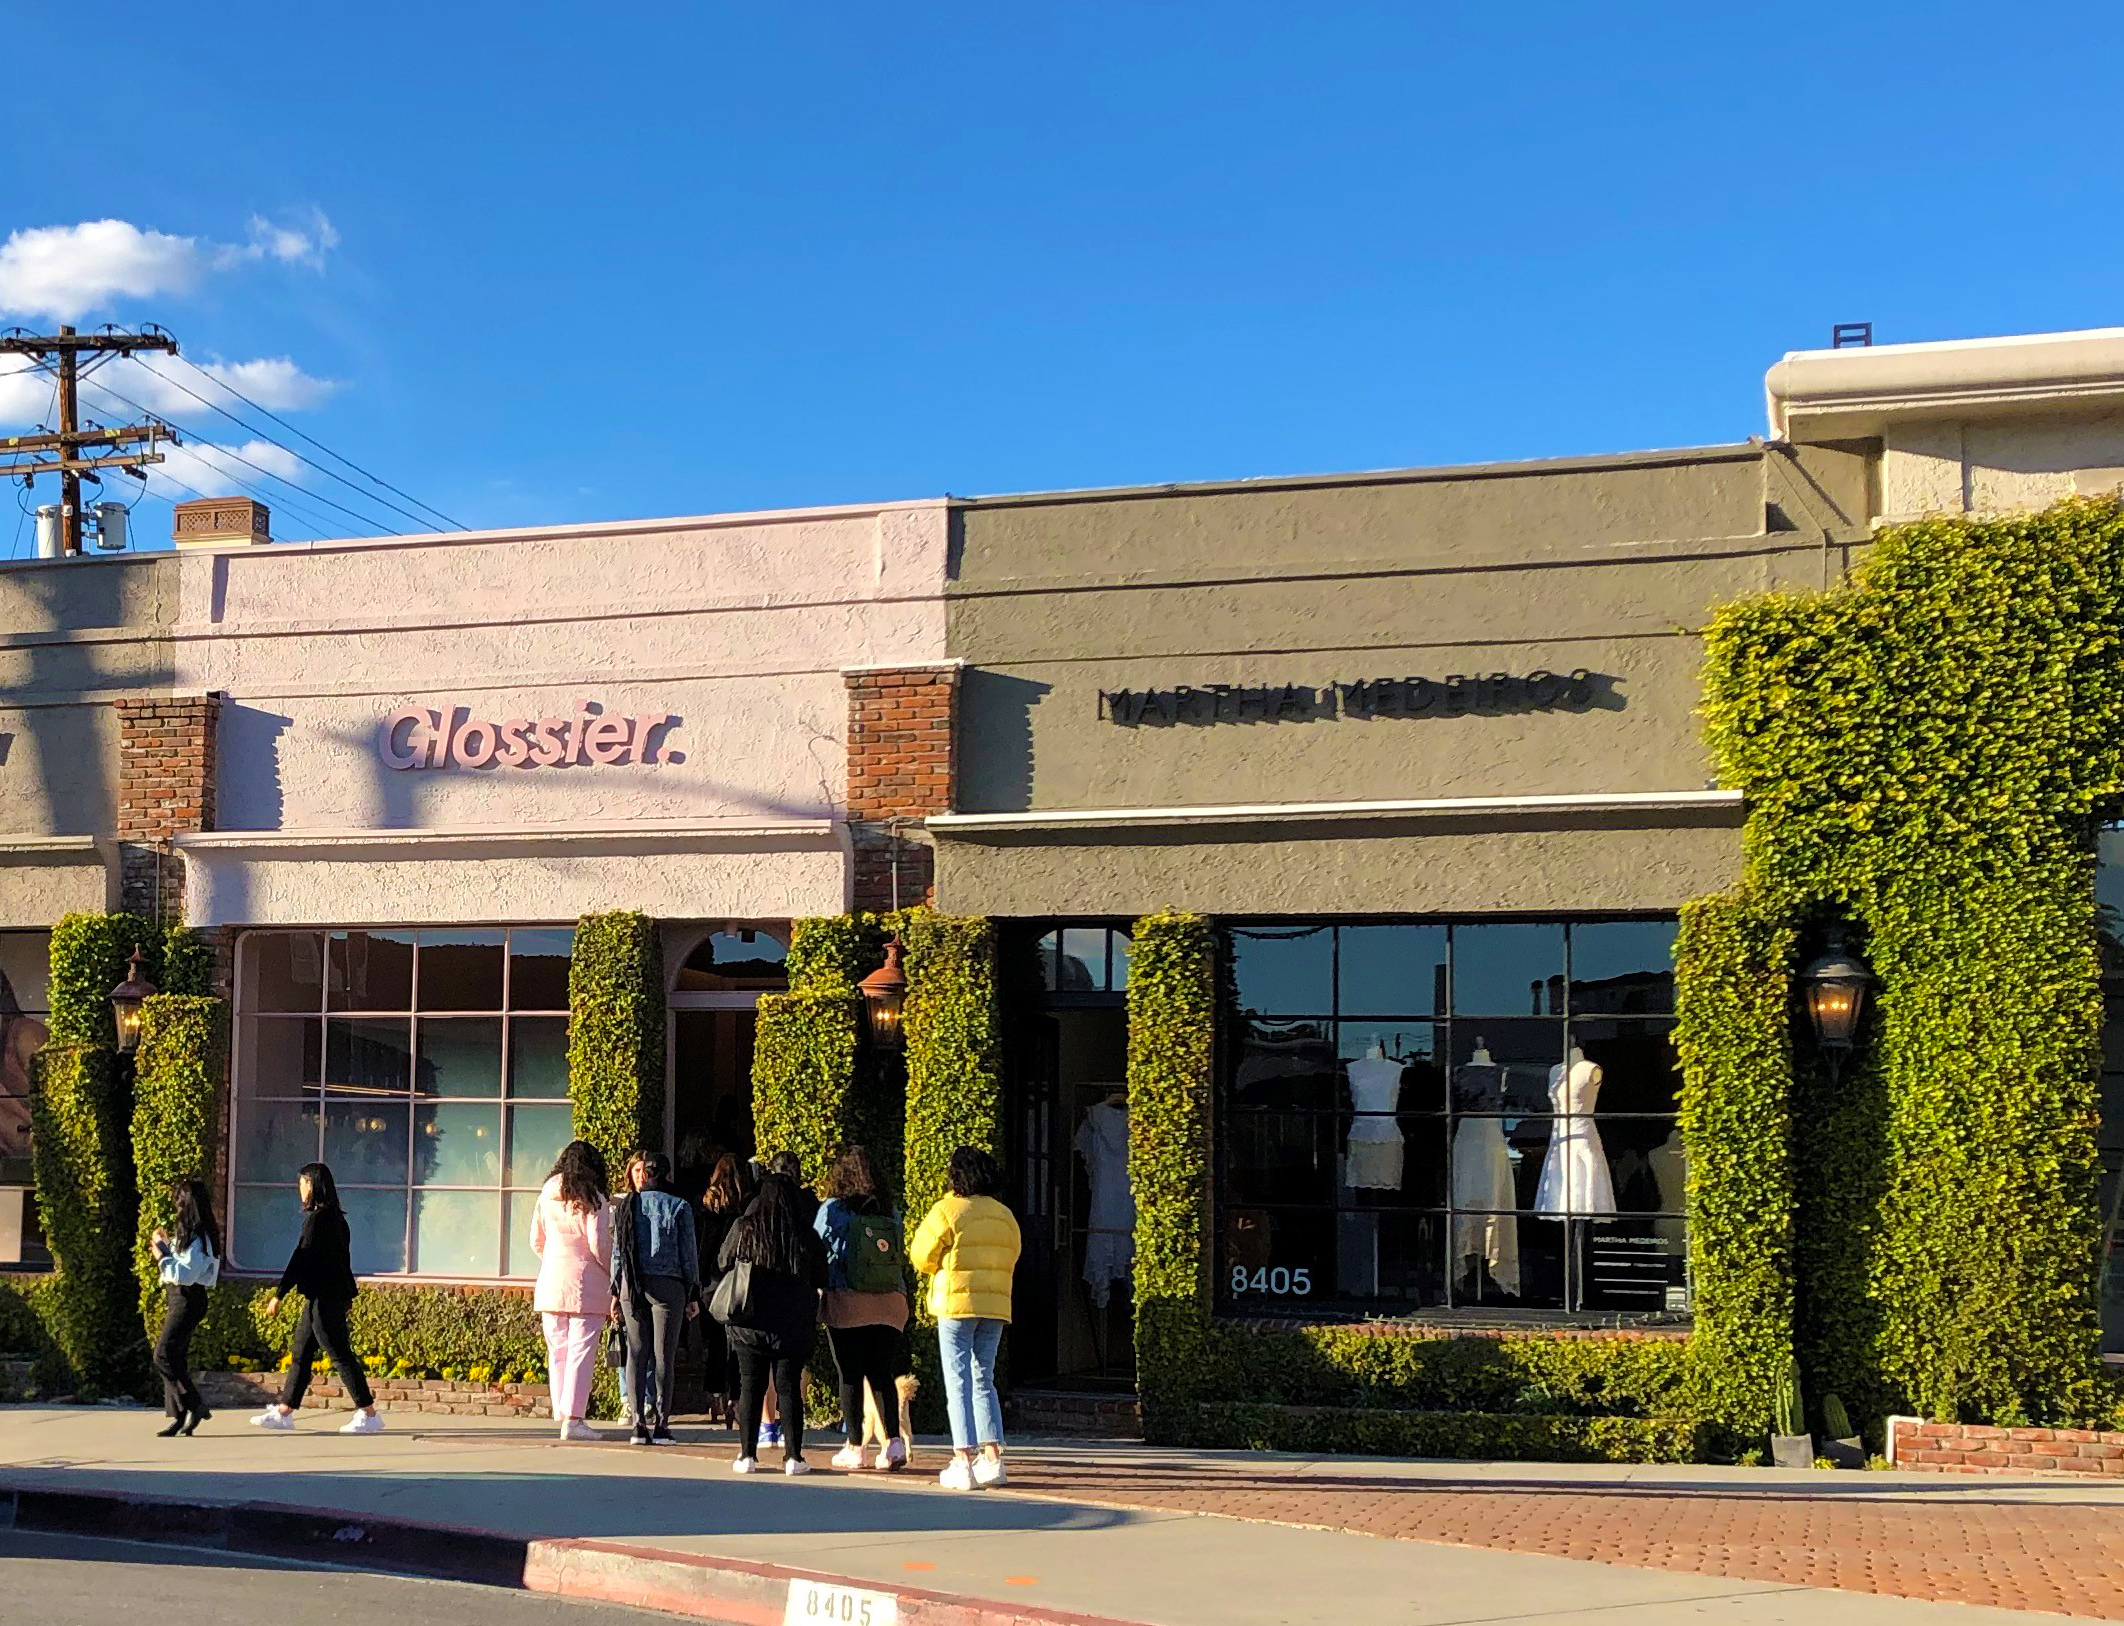 Shoppers wait in line to enter Glossier in California.